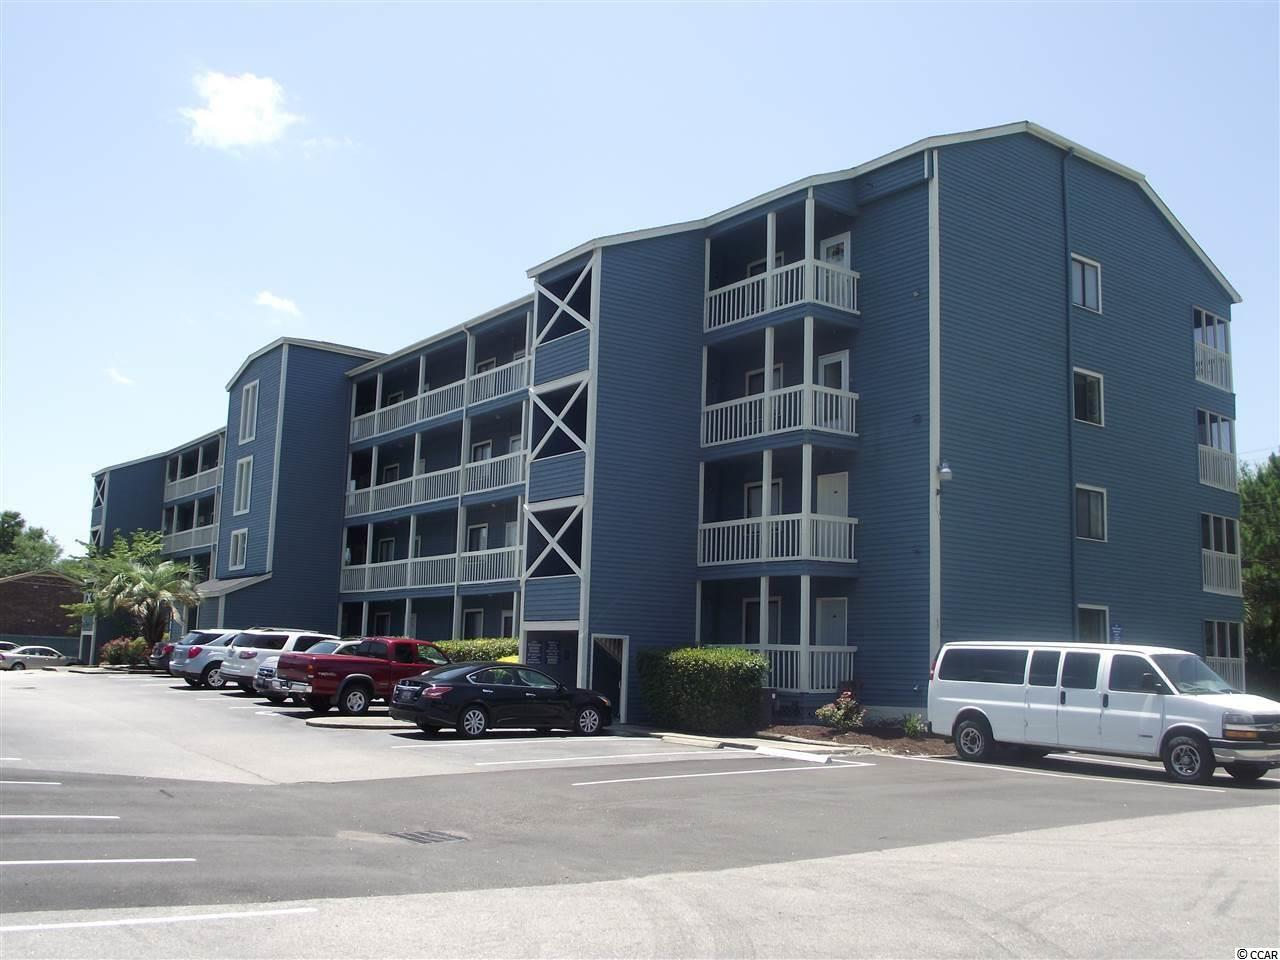 Great location (Little River, west of Hwy 17) for a second home or investment property. Partially furnished 2nd floor condo with elevator. Nice neighborhood, walk to Eagles Nest Golf Course. Also very close to shops & restaurants of Little River & Calabash, with easy access to Hwy. 17, Hwy. 9, and Hwy. 31 for access to all amenities the Grand Strand has to offer. Come see your place in the sun & fun of the Carolina Coastal Living. All measurements are approximate and should be verified by buyer.